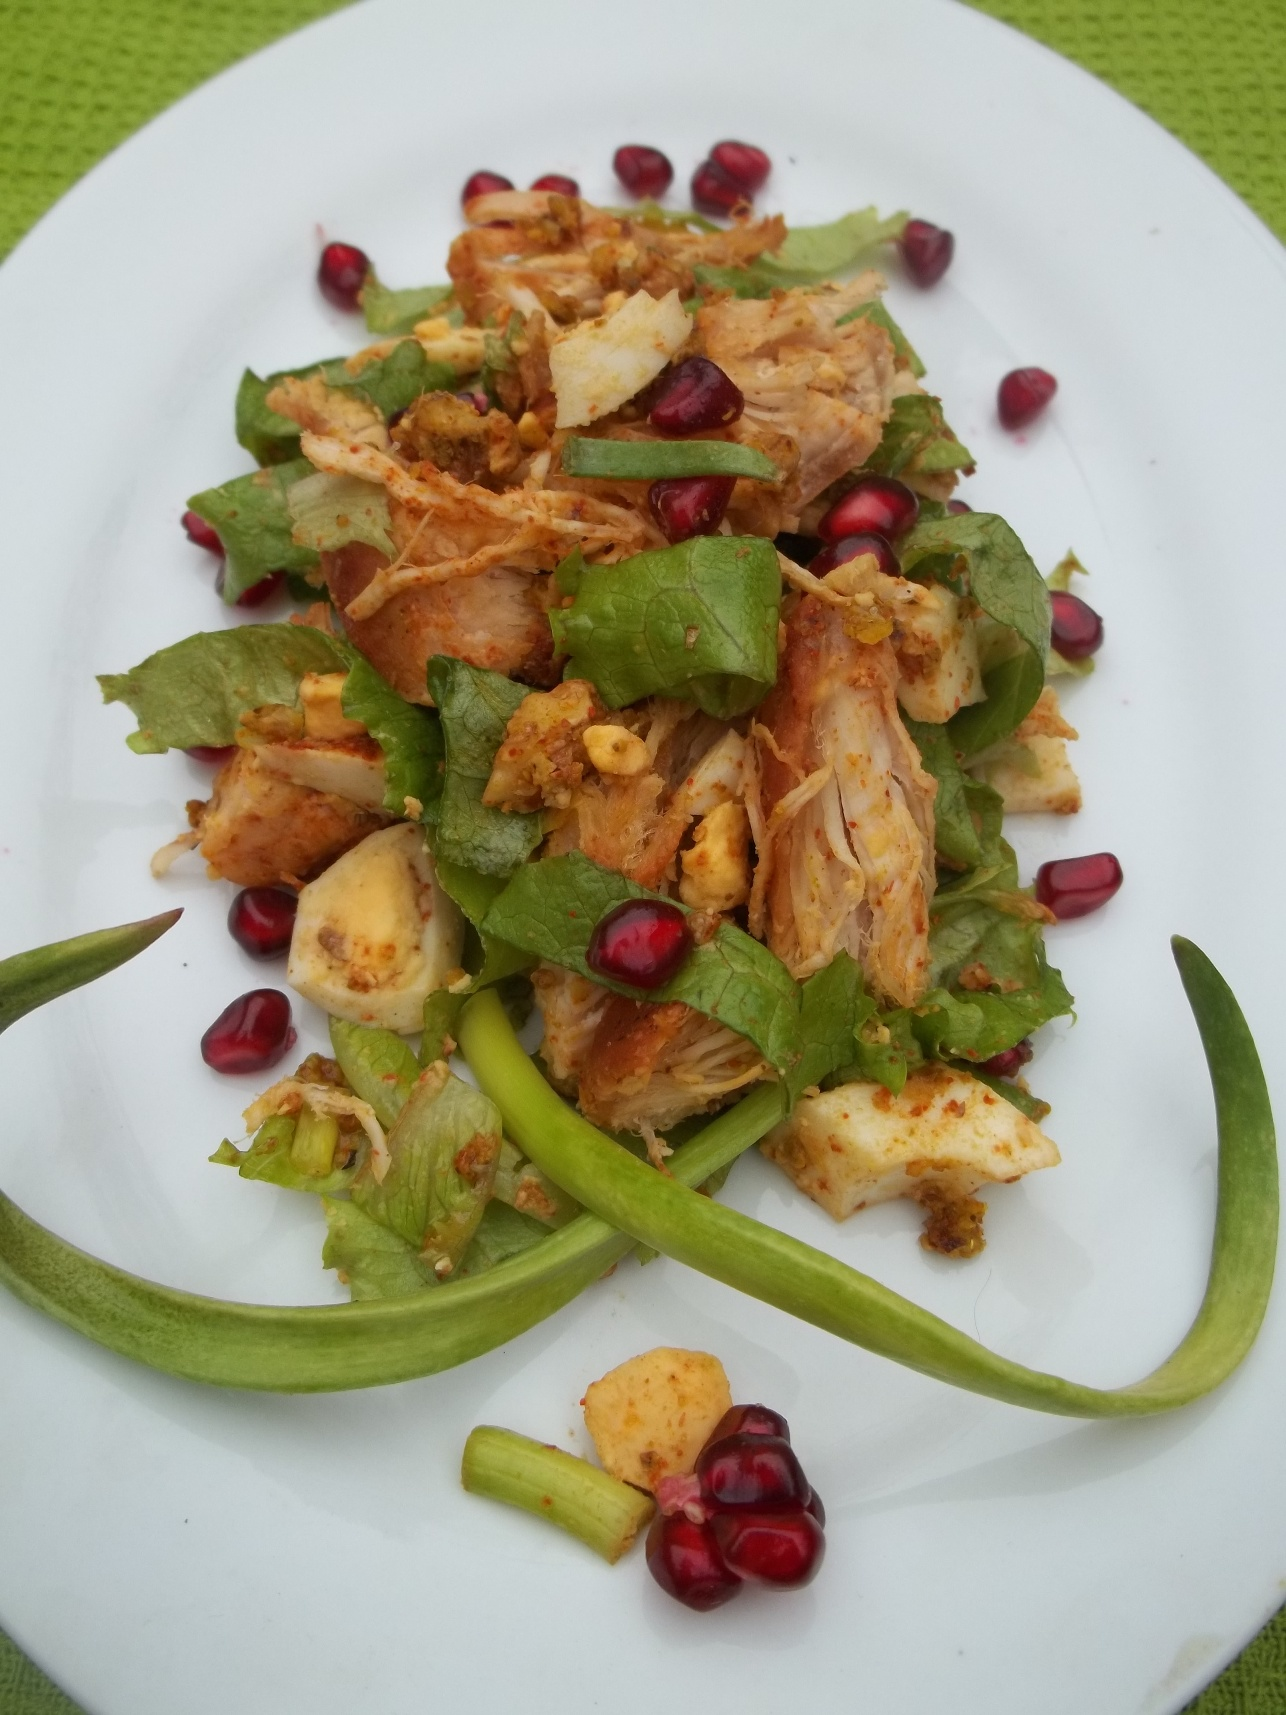 Enjoy your Chicken Salad with Walnuts and Pomegranate!